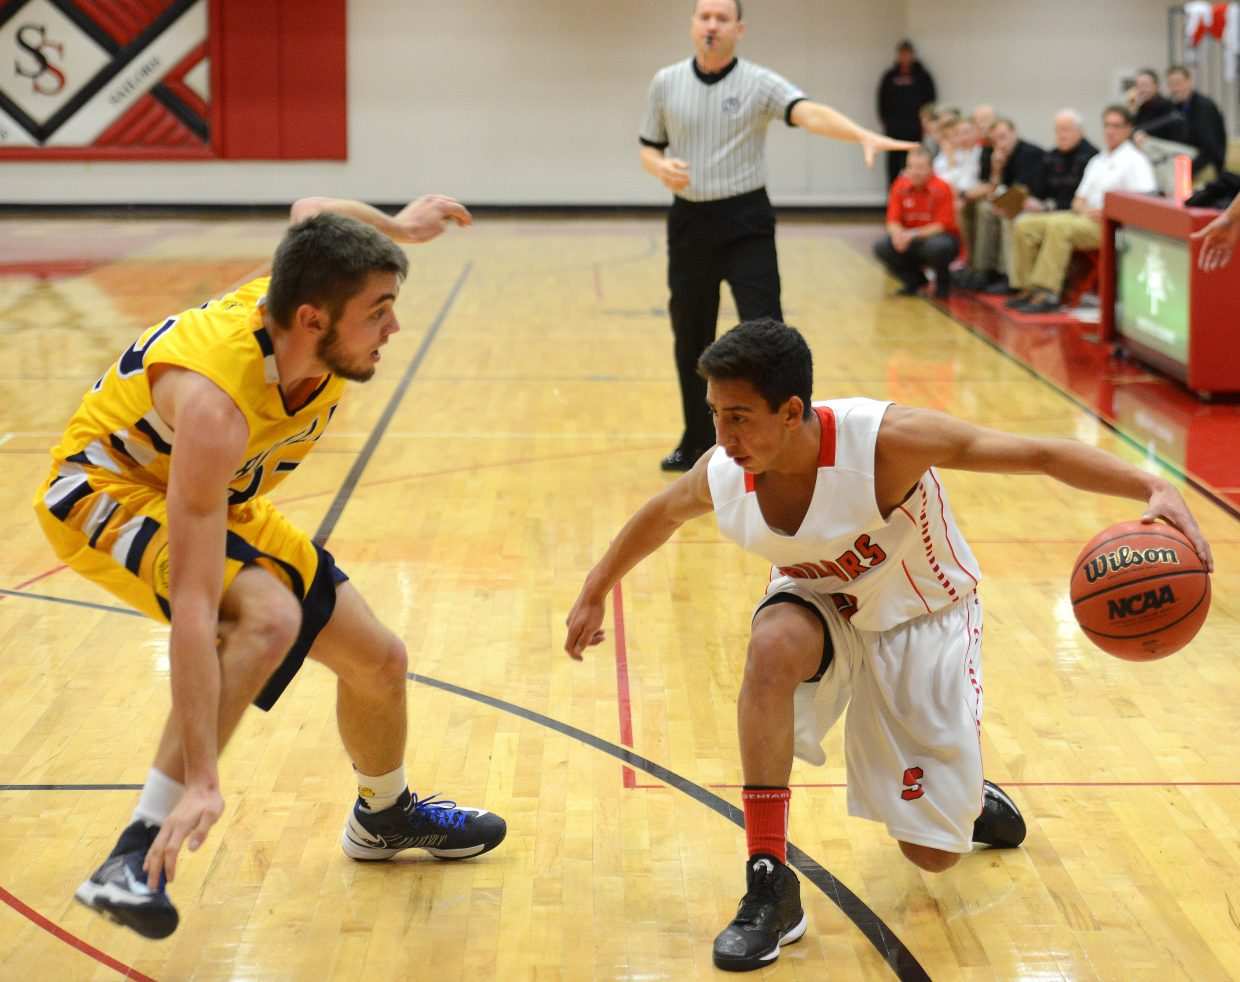 Steamboat's Hector Lopez tries to lay down a dribbling move Wednesday against Rifle.